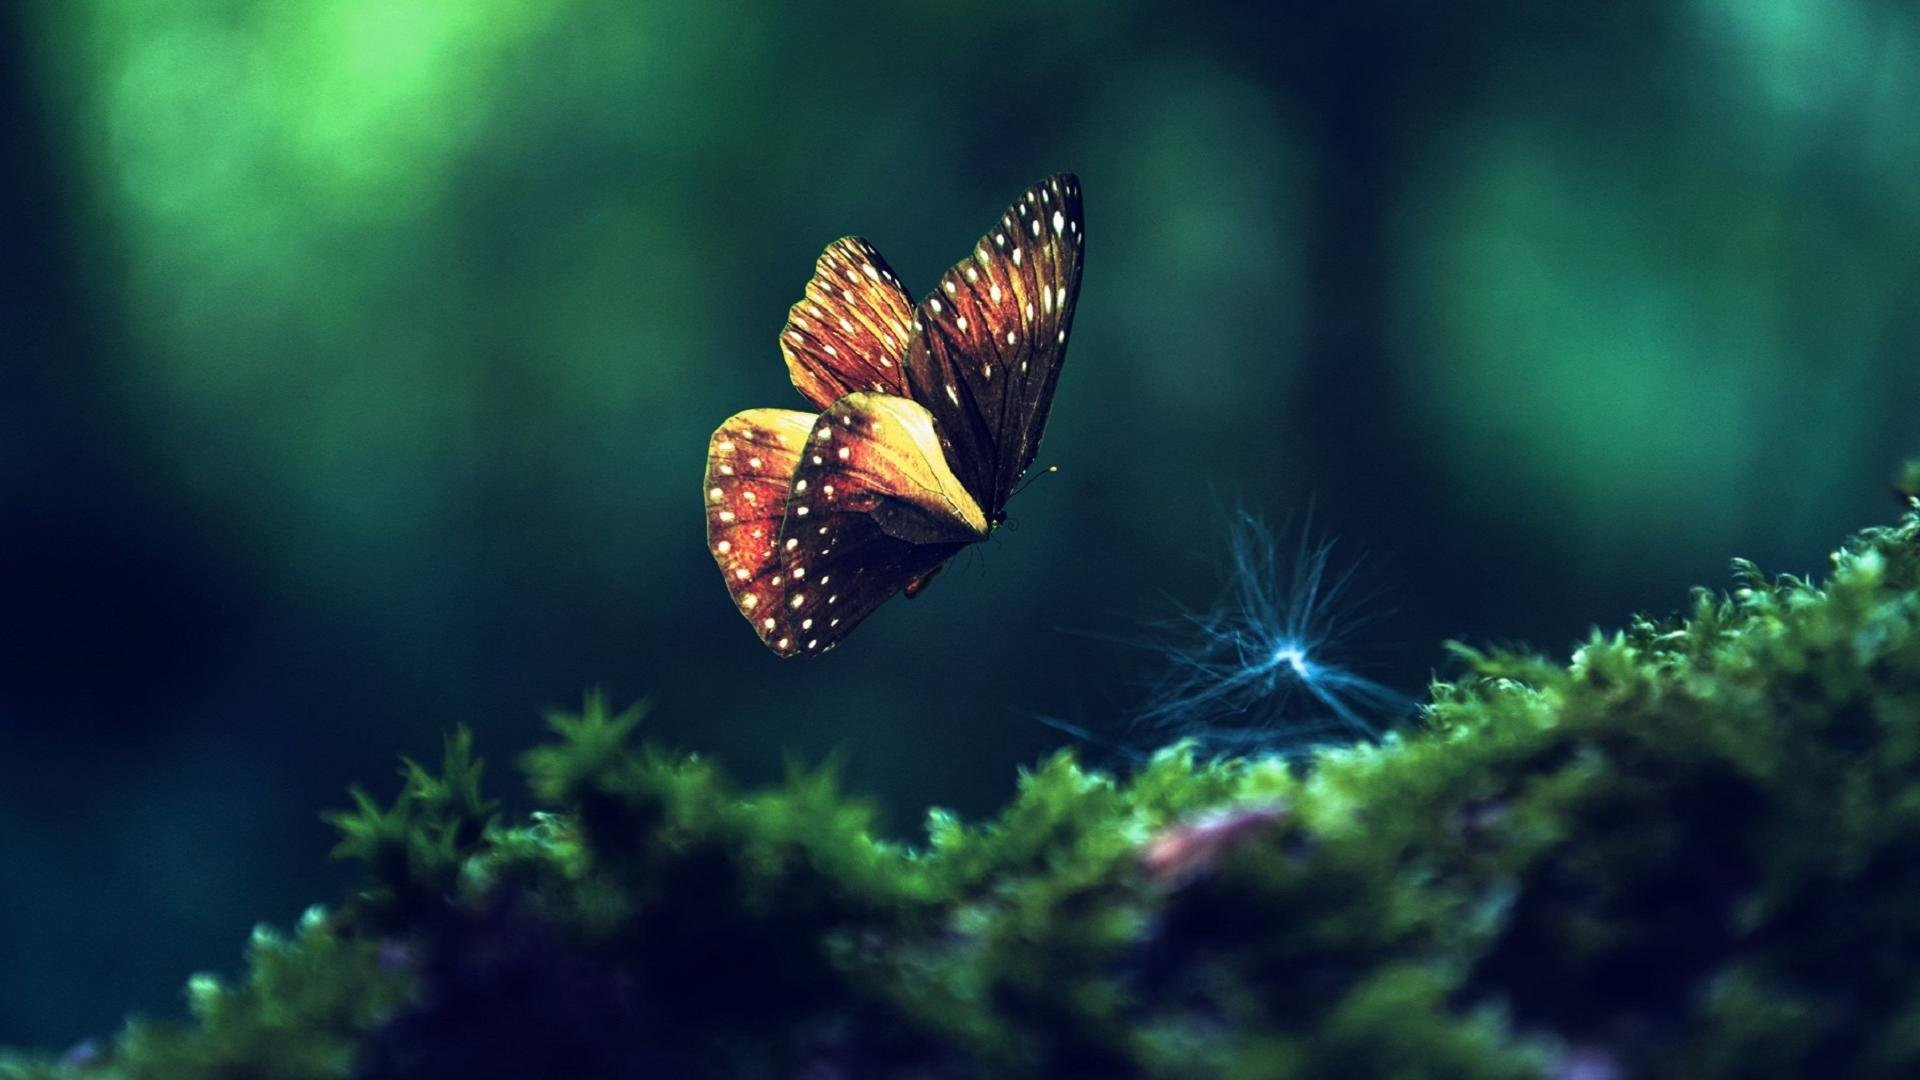 Download Full Hd 1080p Butterfly Desktop Wallpaper ID167530 For Free